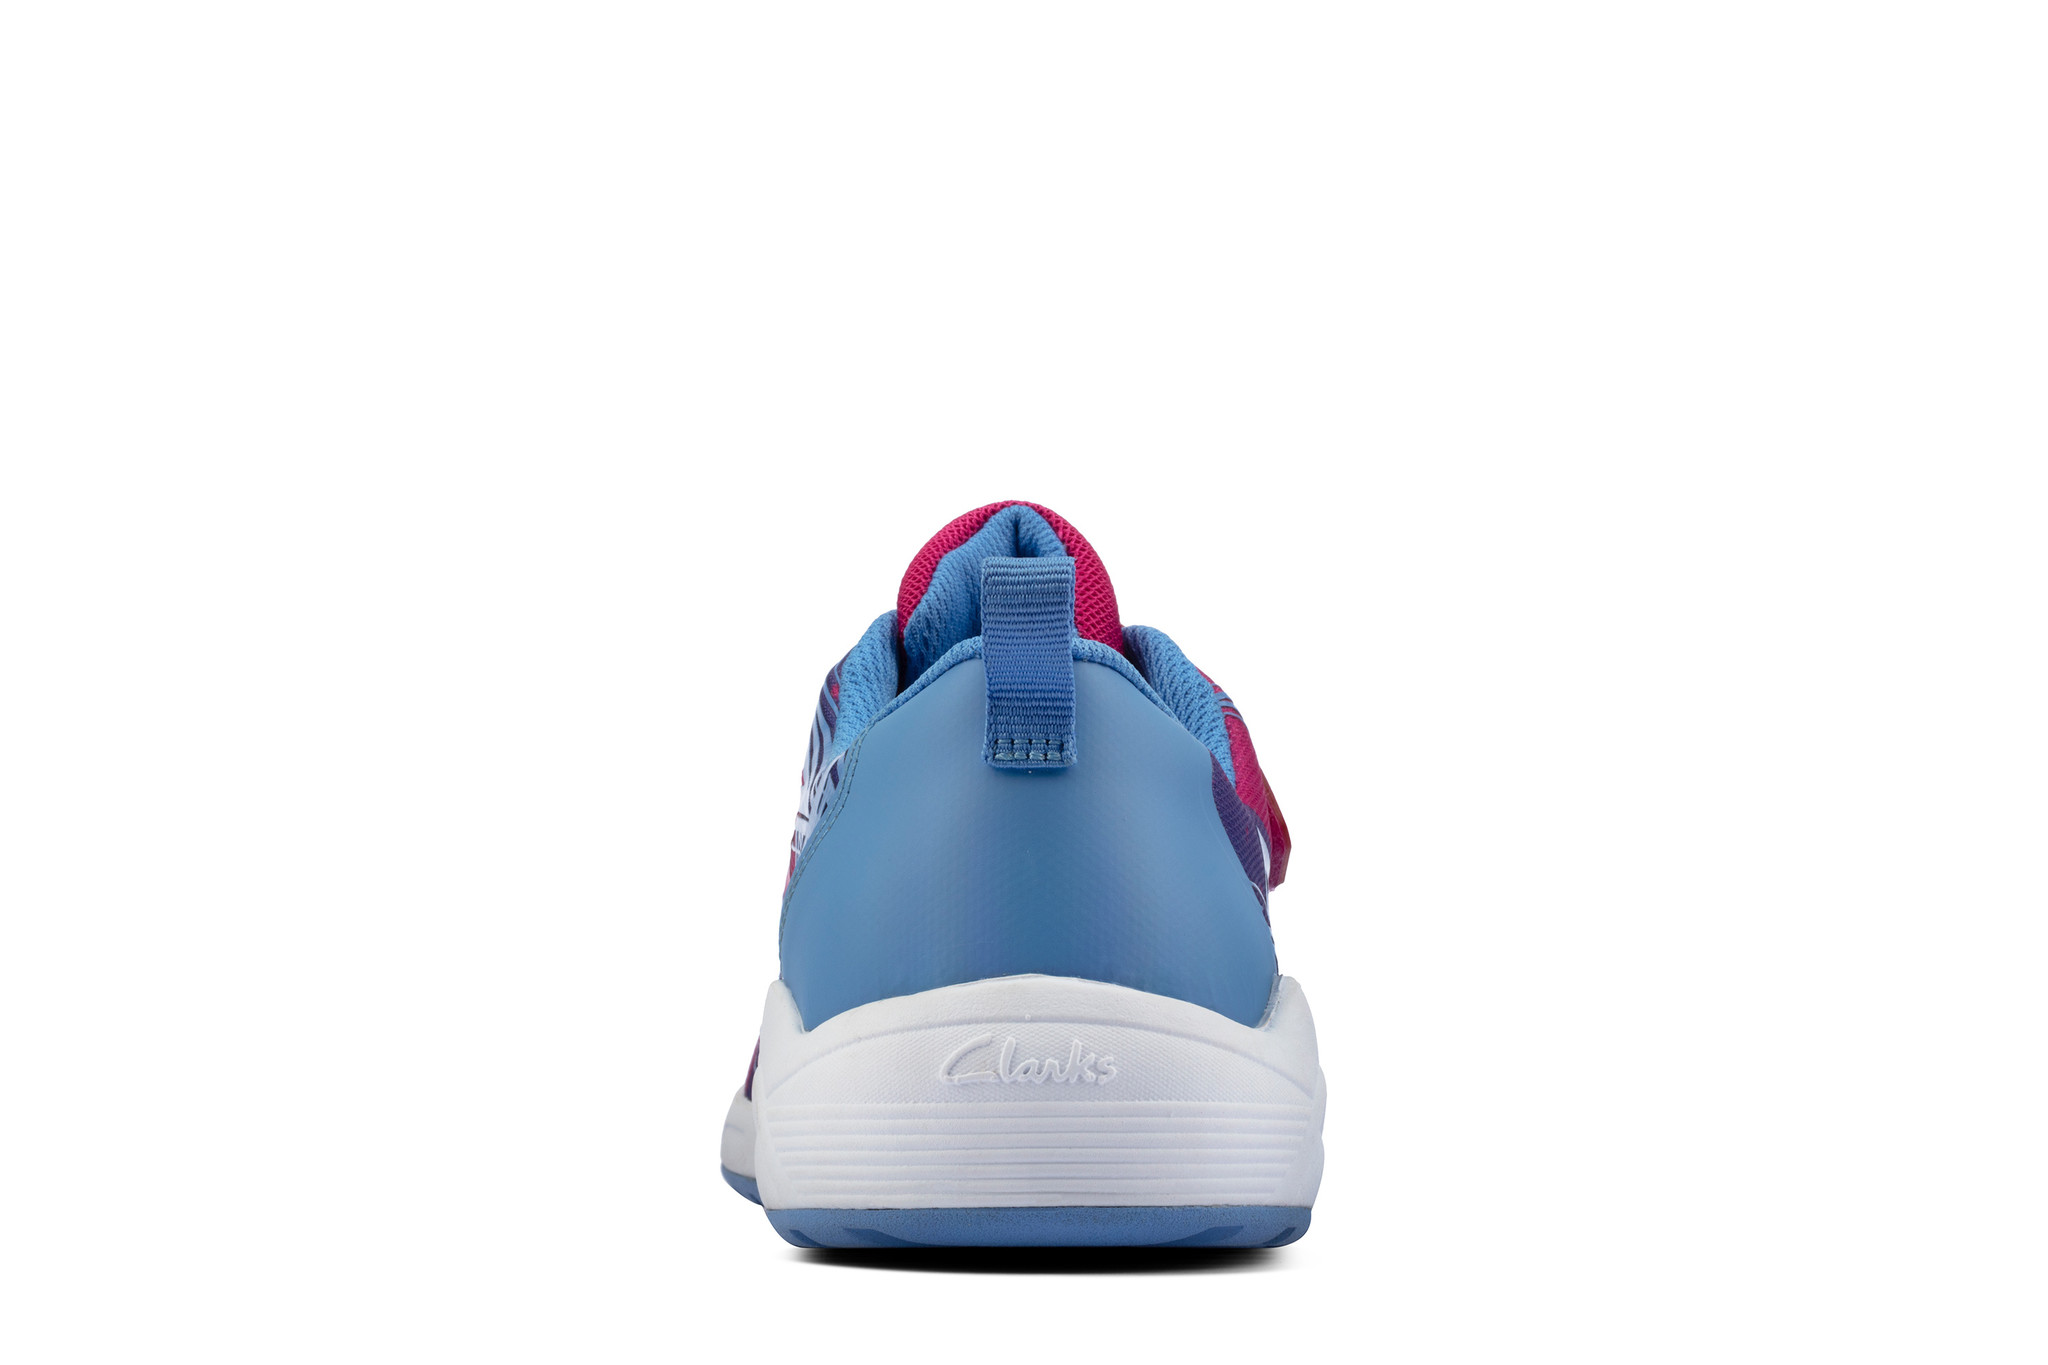 Clarks Aeon Pace Pink Combi Youth